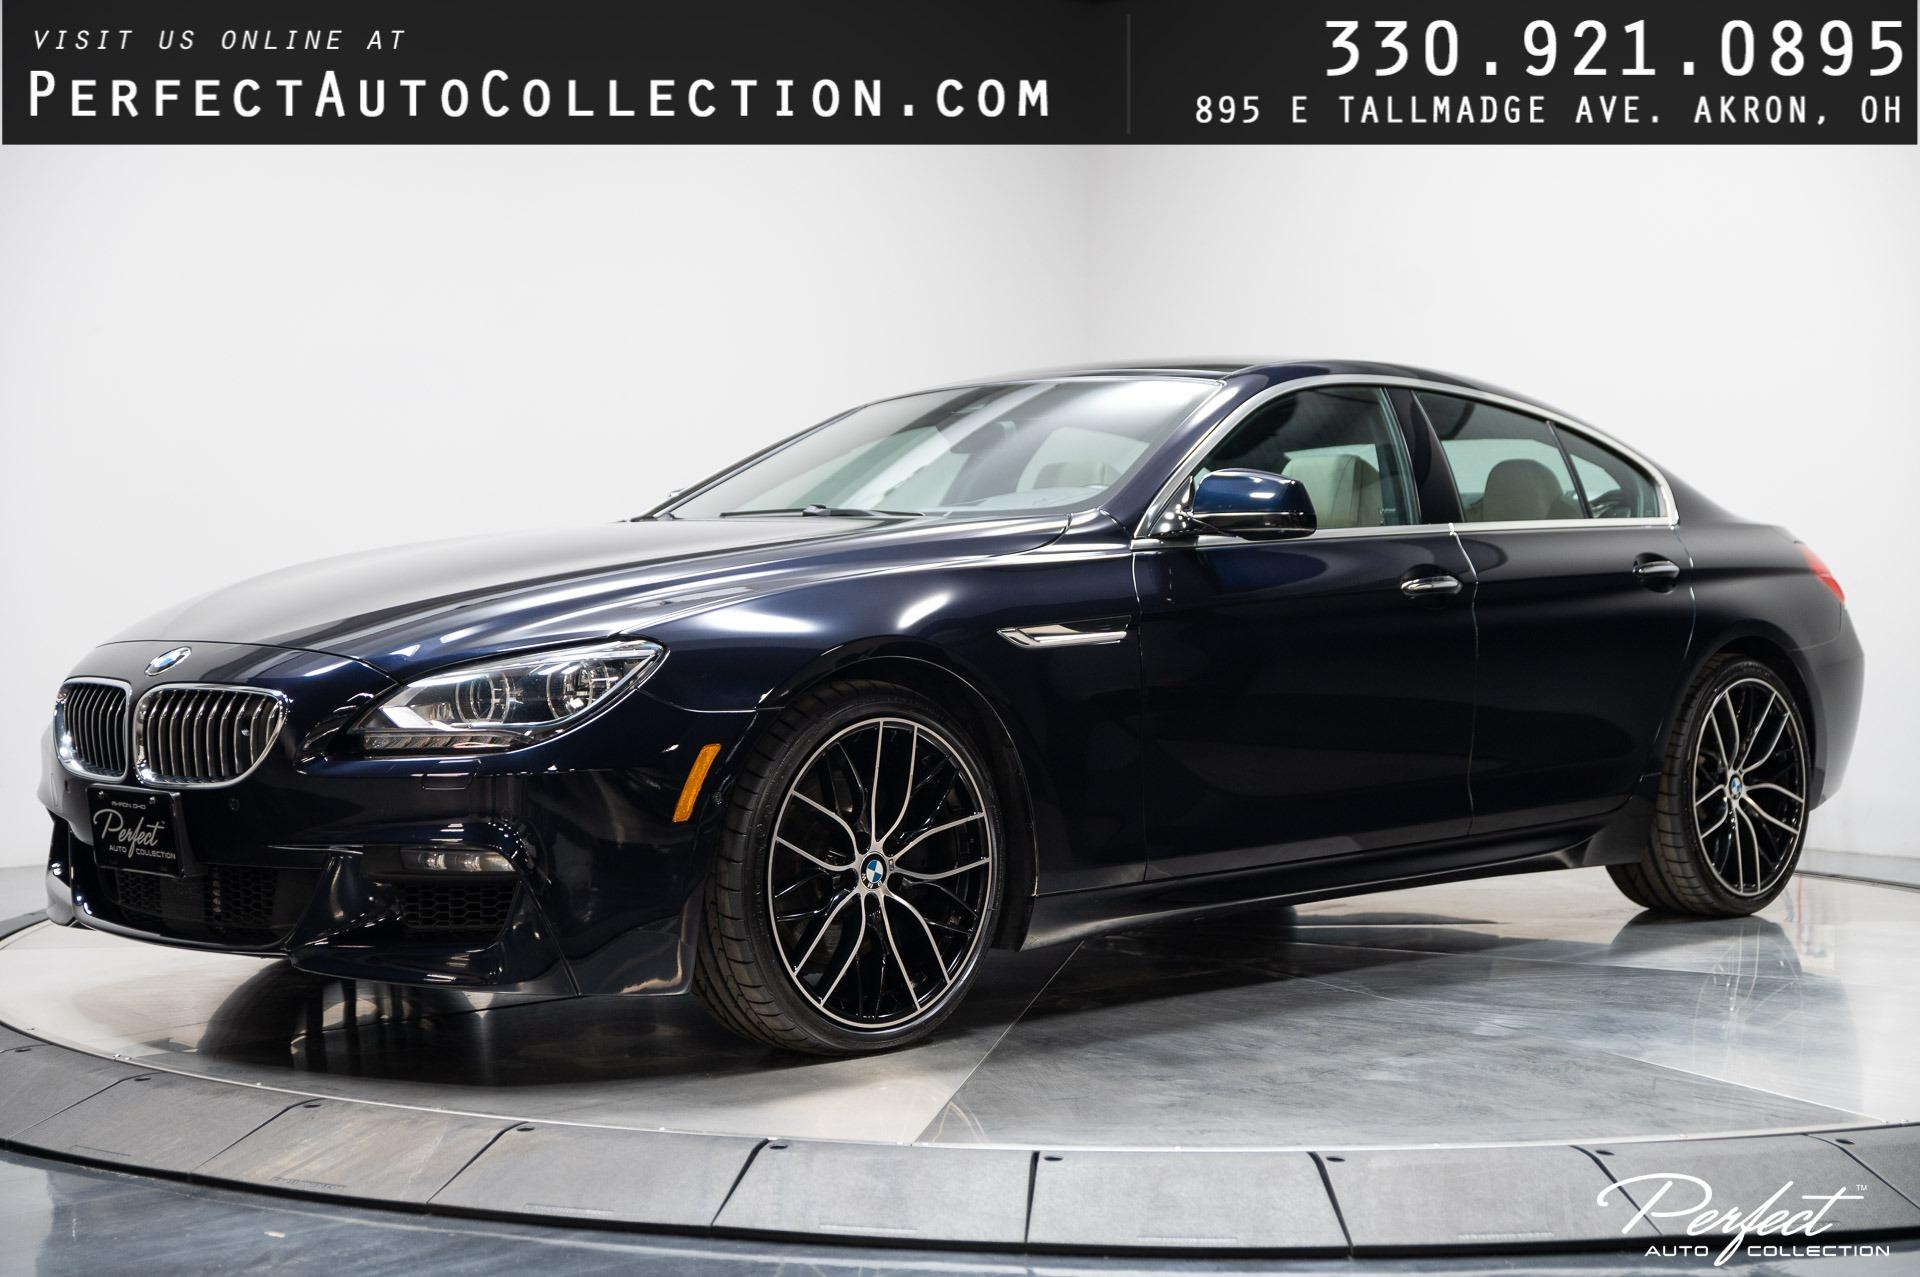 Used 2013 BMW 6 Series 650i xDrive Gran Coupe for sale $30,495 at Perfect Auto Collection in Akron OH 44310 1